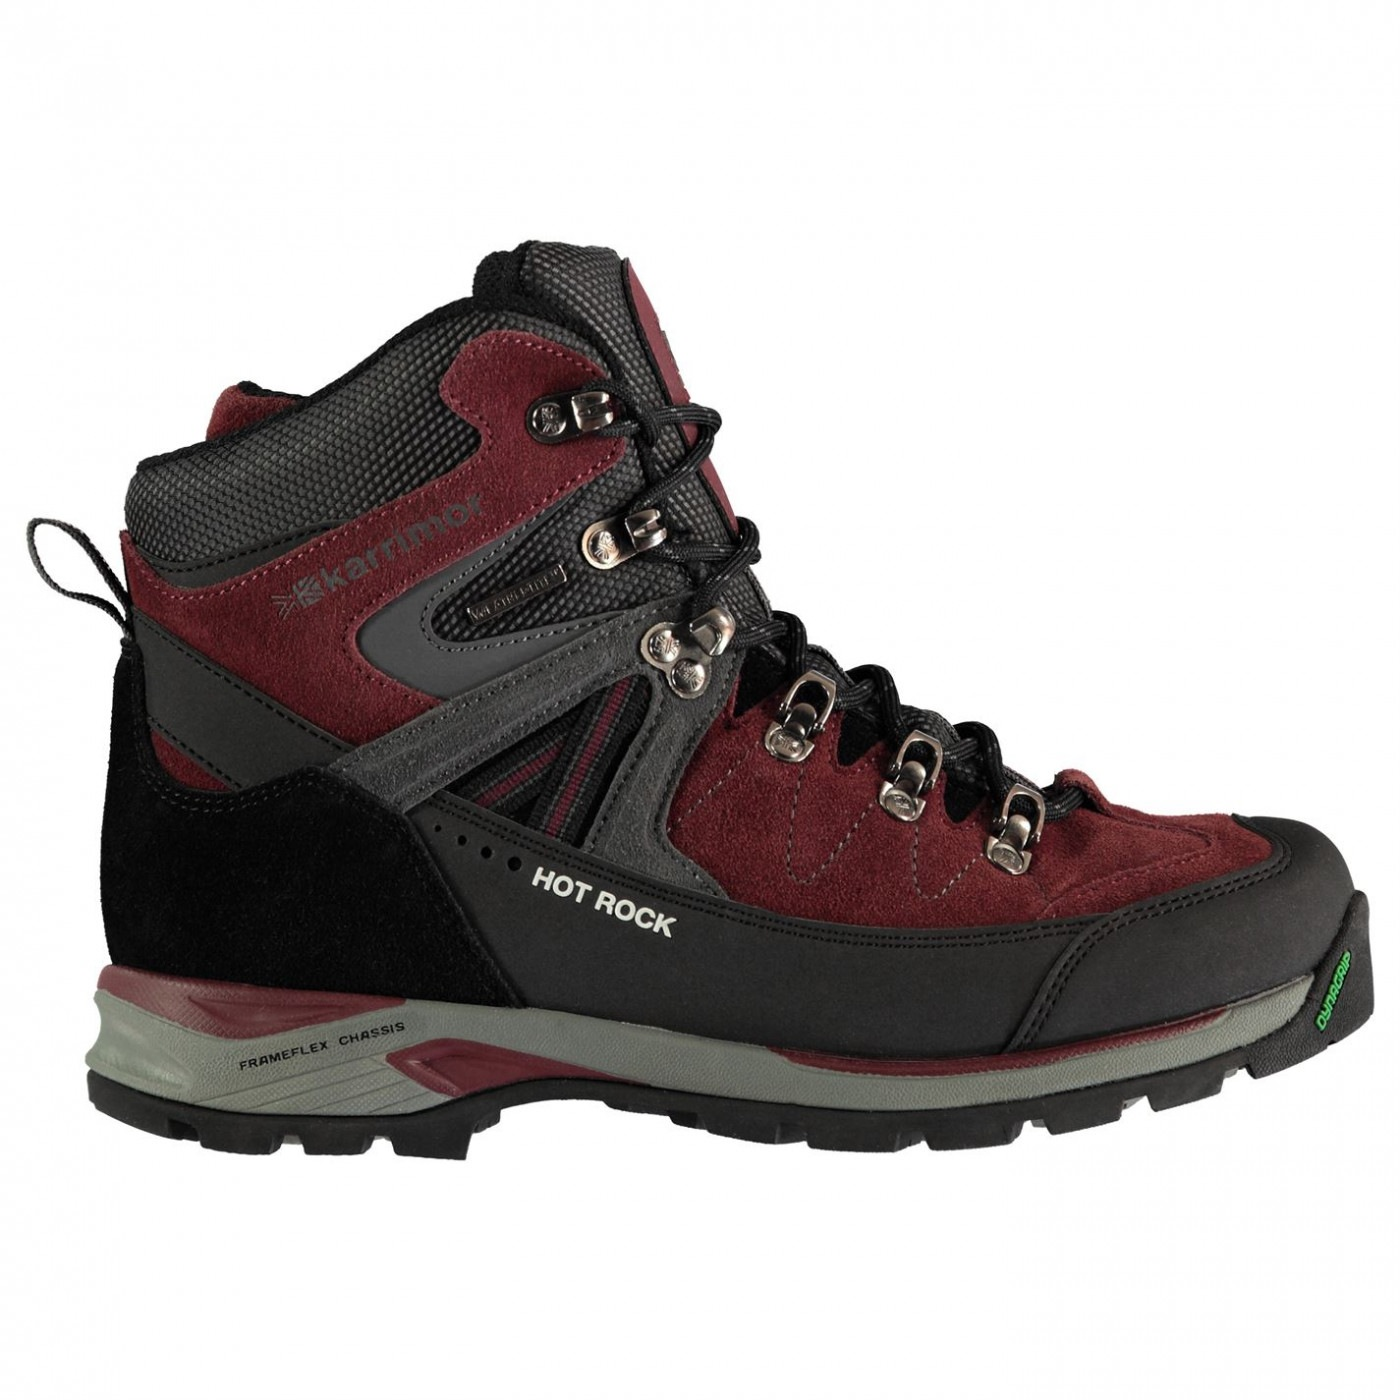 Women's walking shoes Karrimor Hot Rock